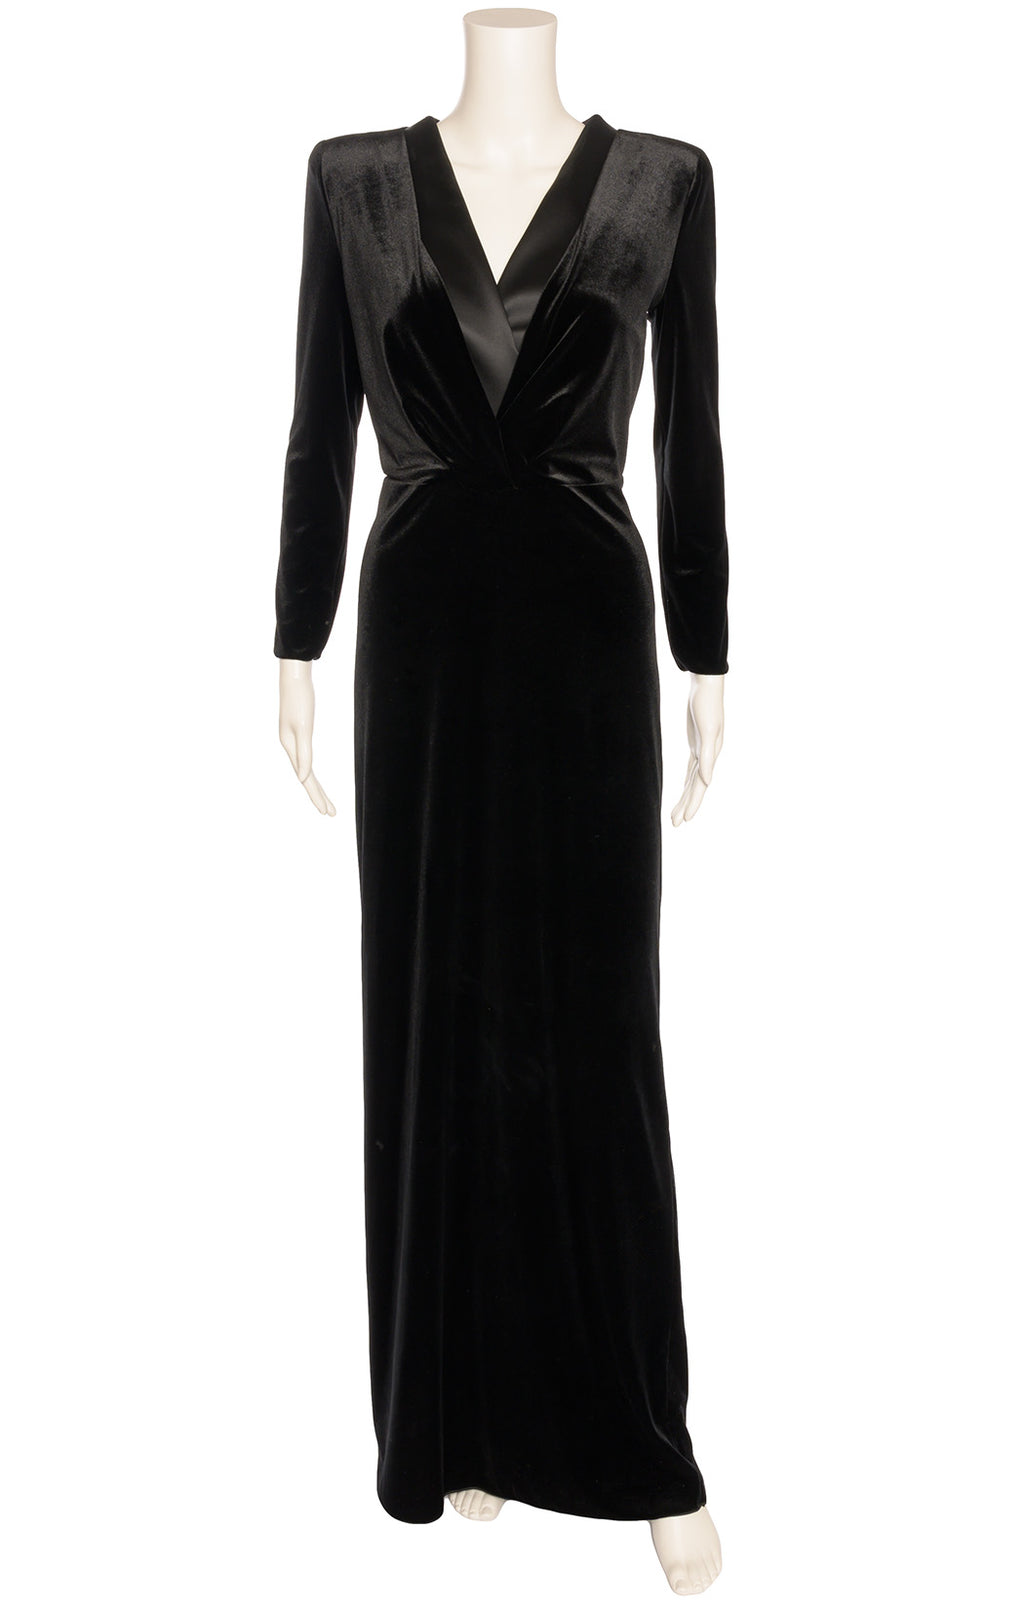 Front view of GIORGIO ARMANI  Long dress Size: IT 40 (comparable to US 4)